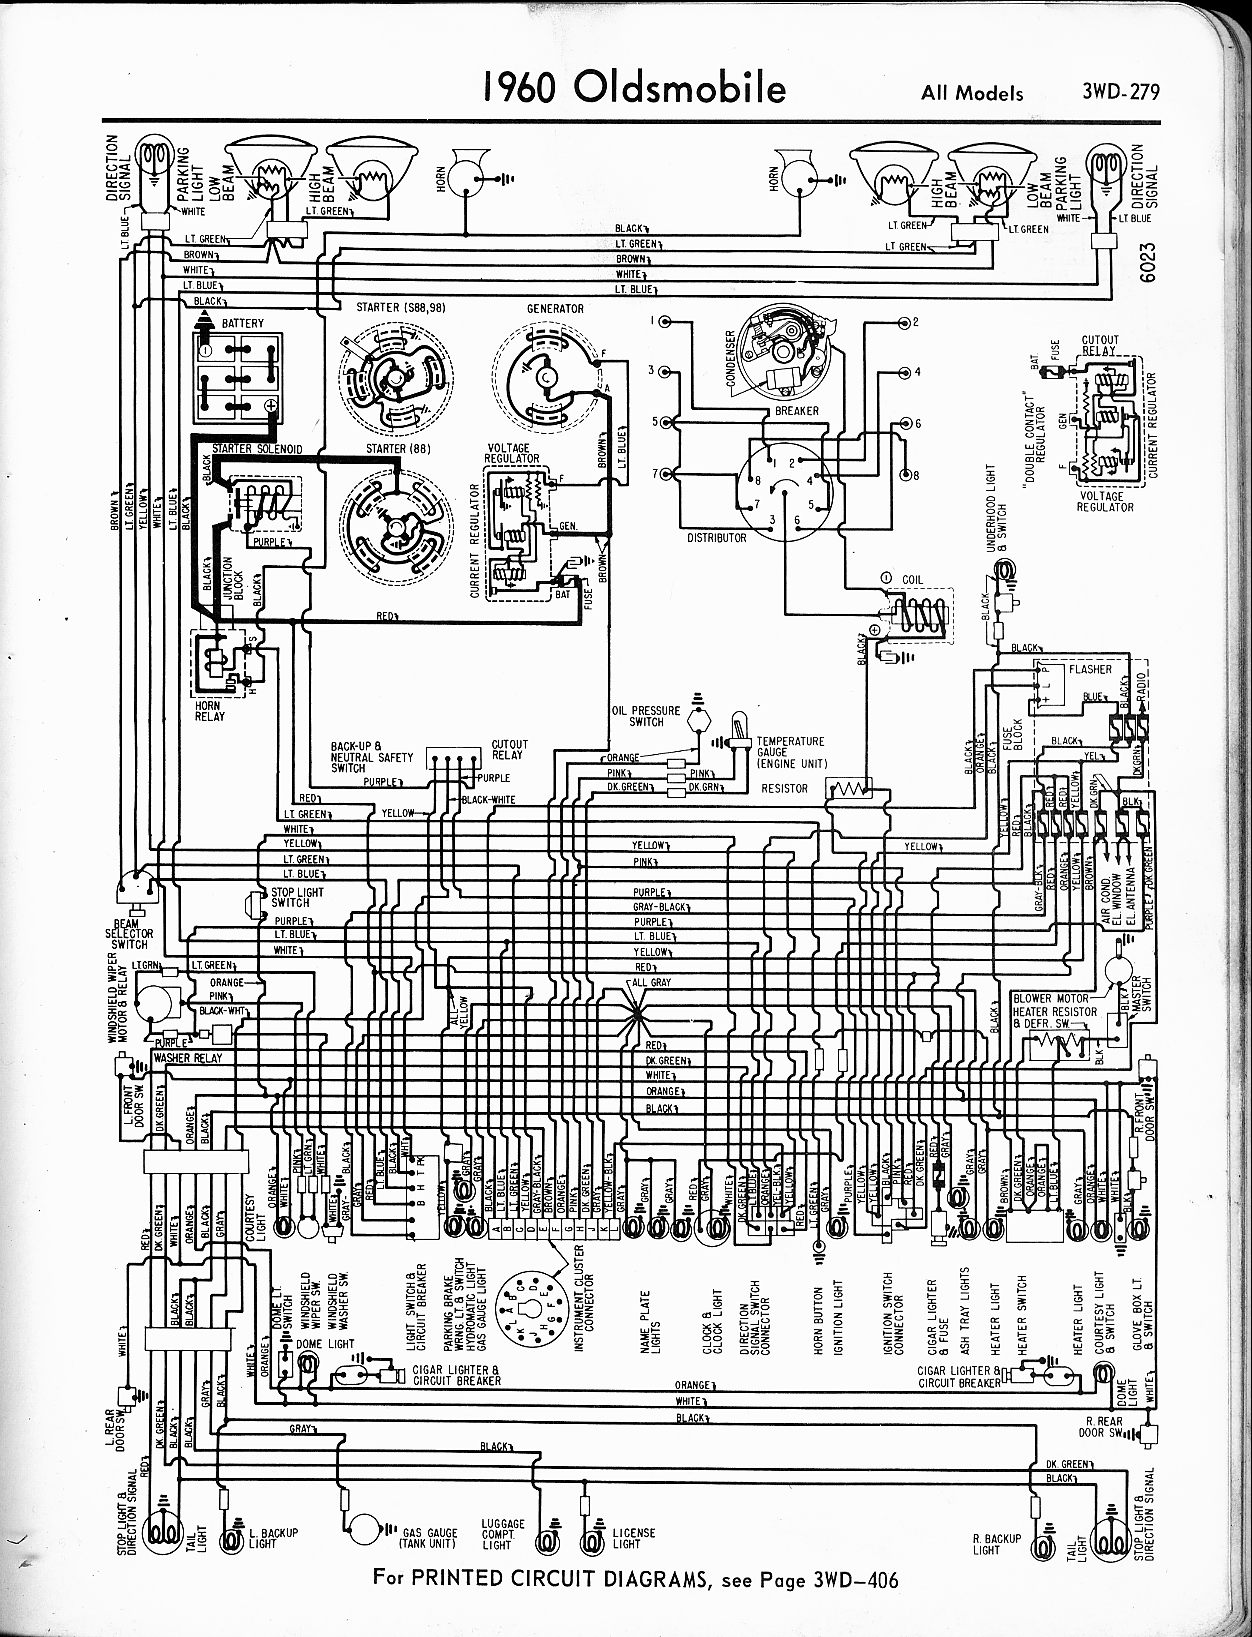 1950 oldsmobile 98 wiring diagrams oldsmobile wiring diagrams - the old car manual project 1989 oldsmobile 98 wiring diagram #12